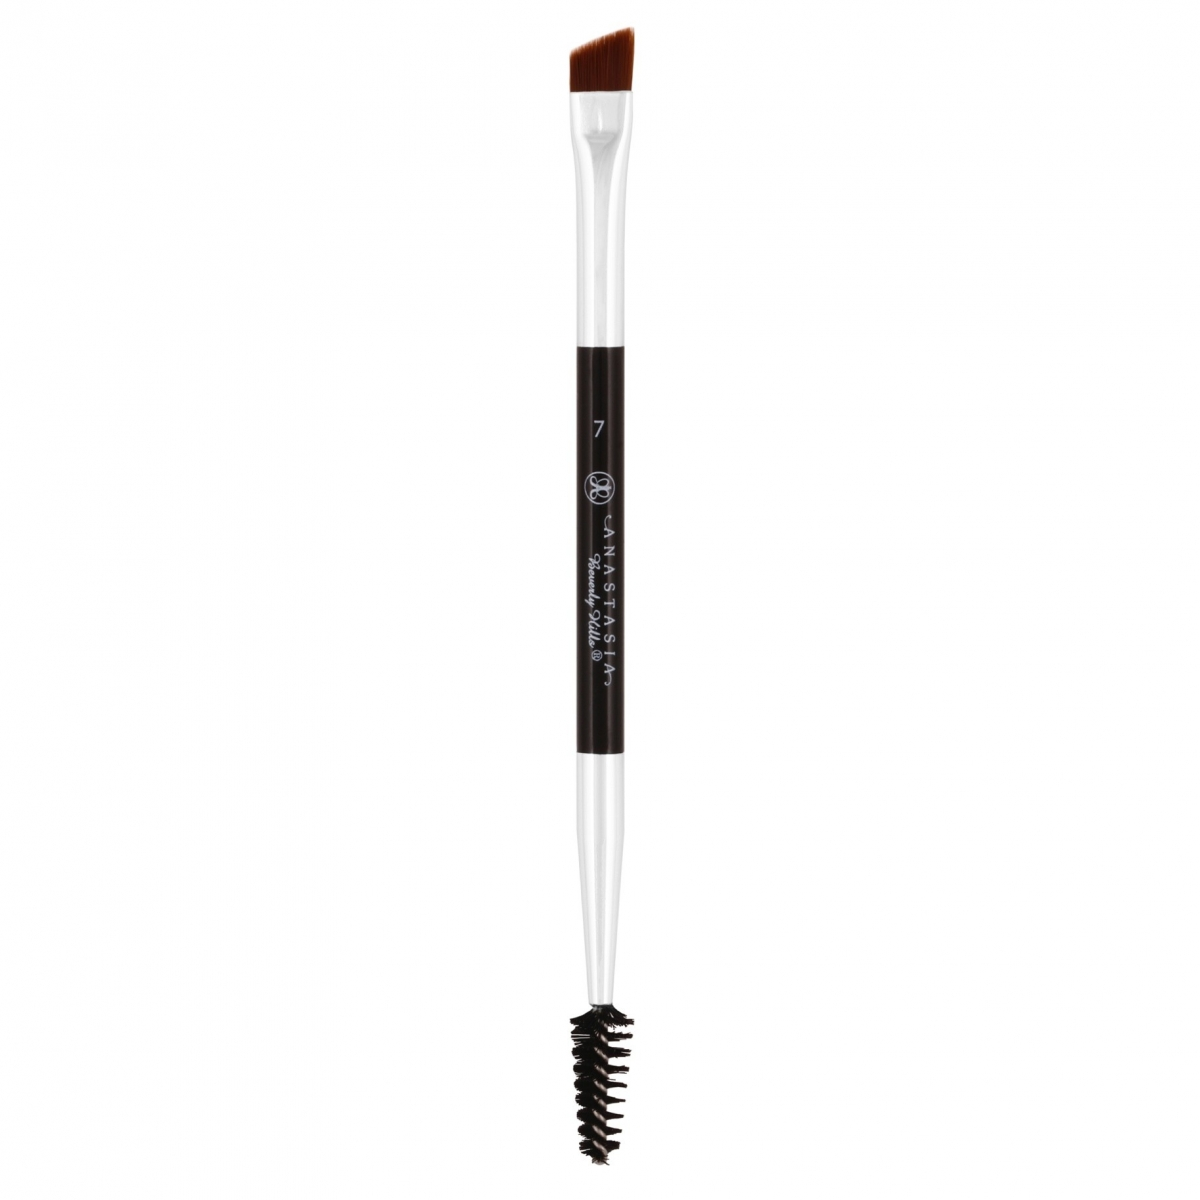 Кисть Anastasia Beverly Hills. Duo Brush #7